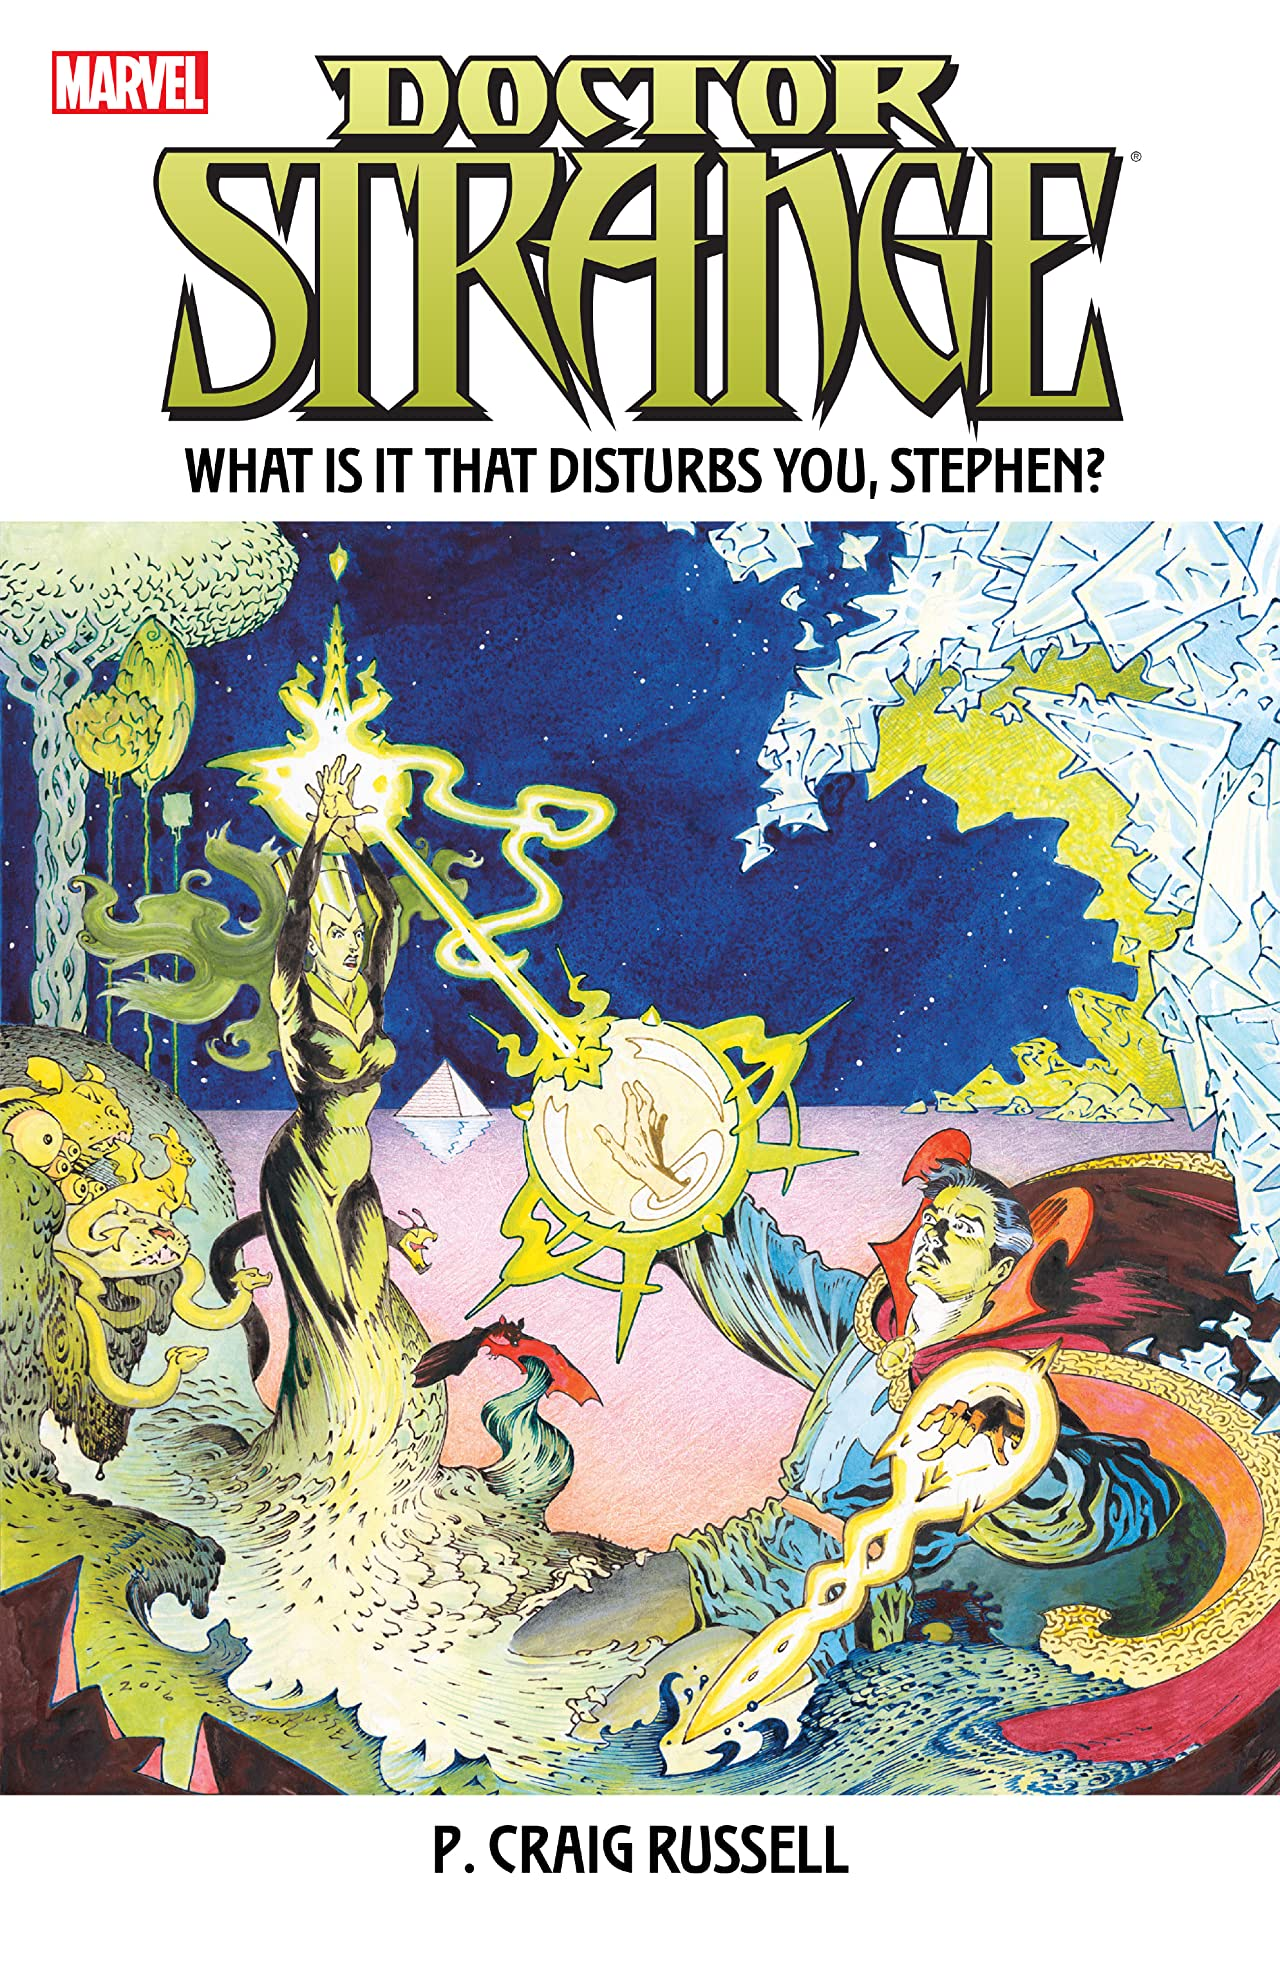 Dr. Strange: What Is It That Disturbs You, Stephen?